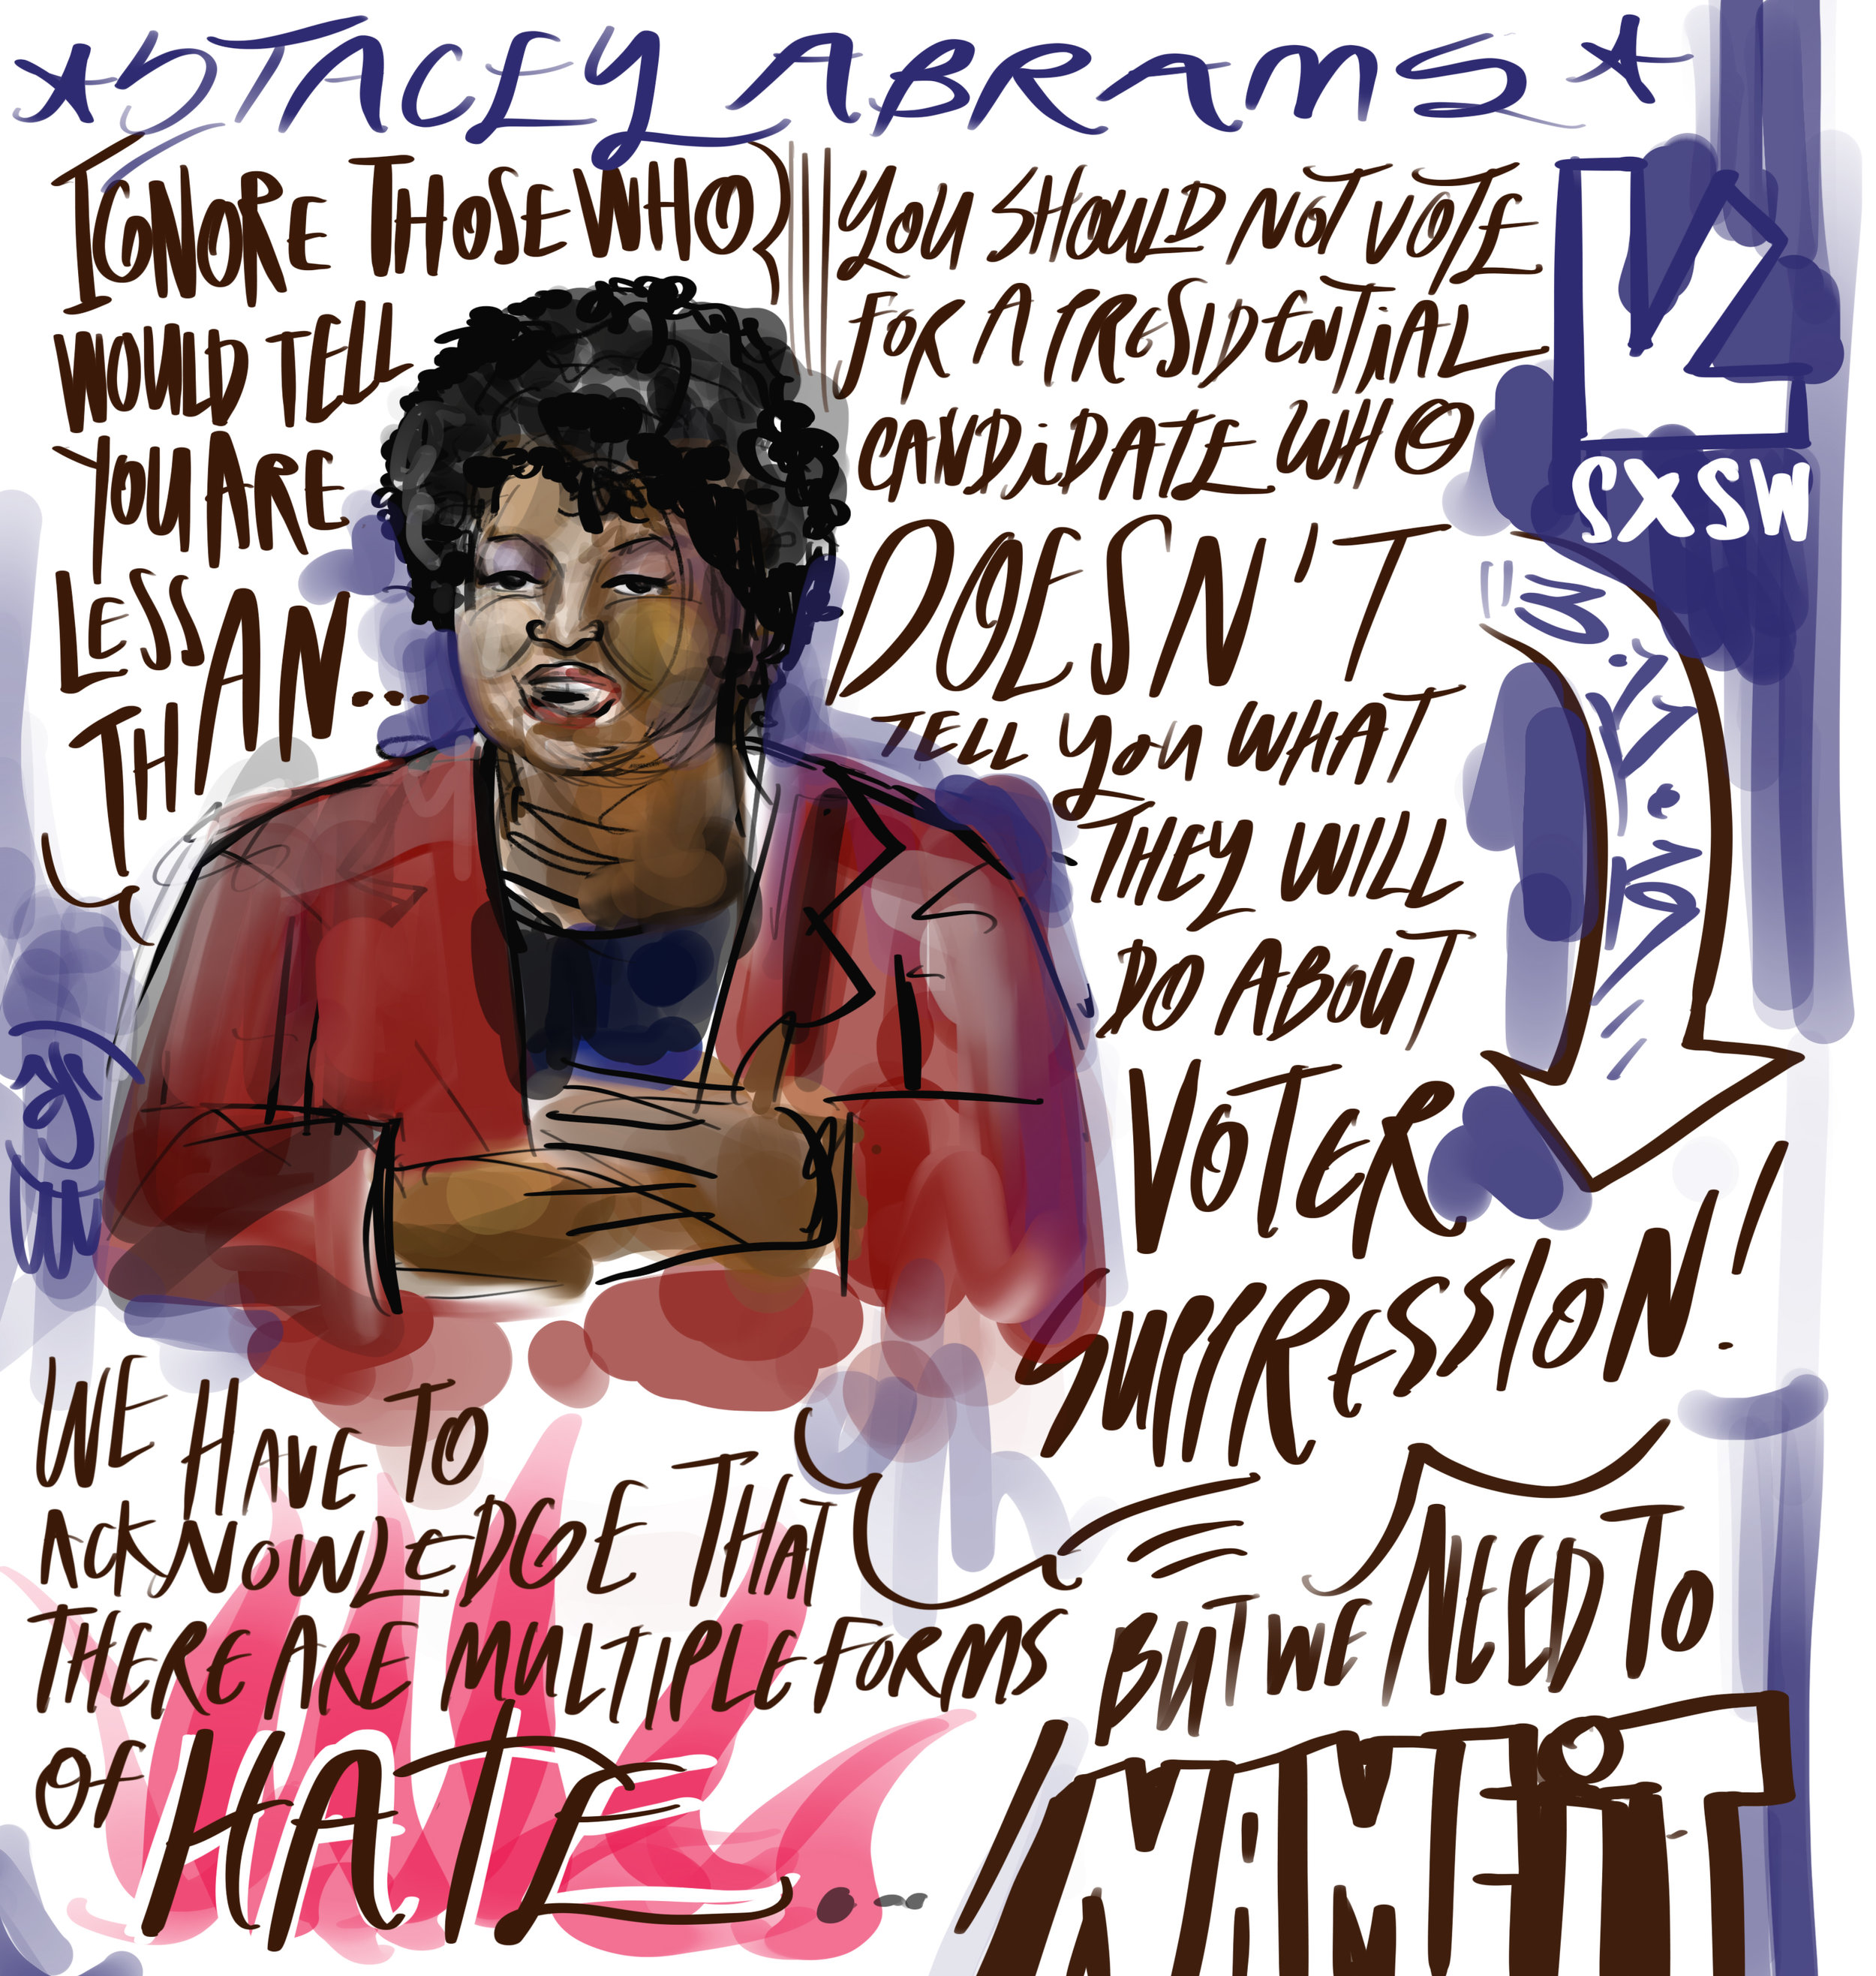 staceyAbrams3-11-19.jpg